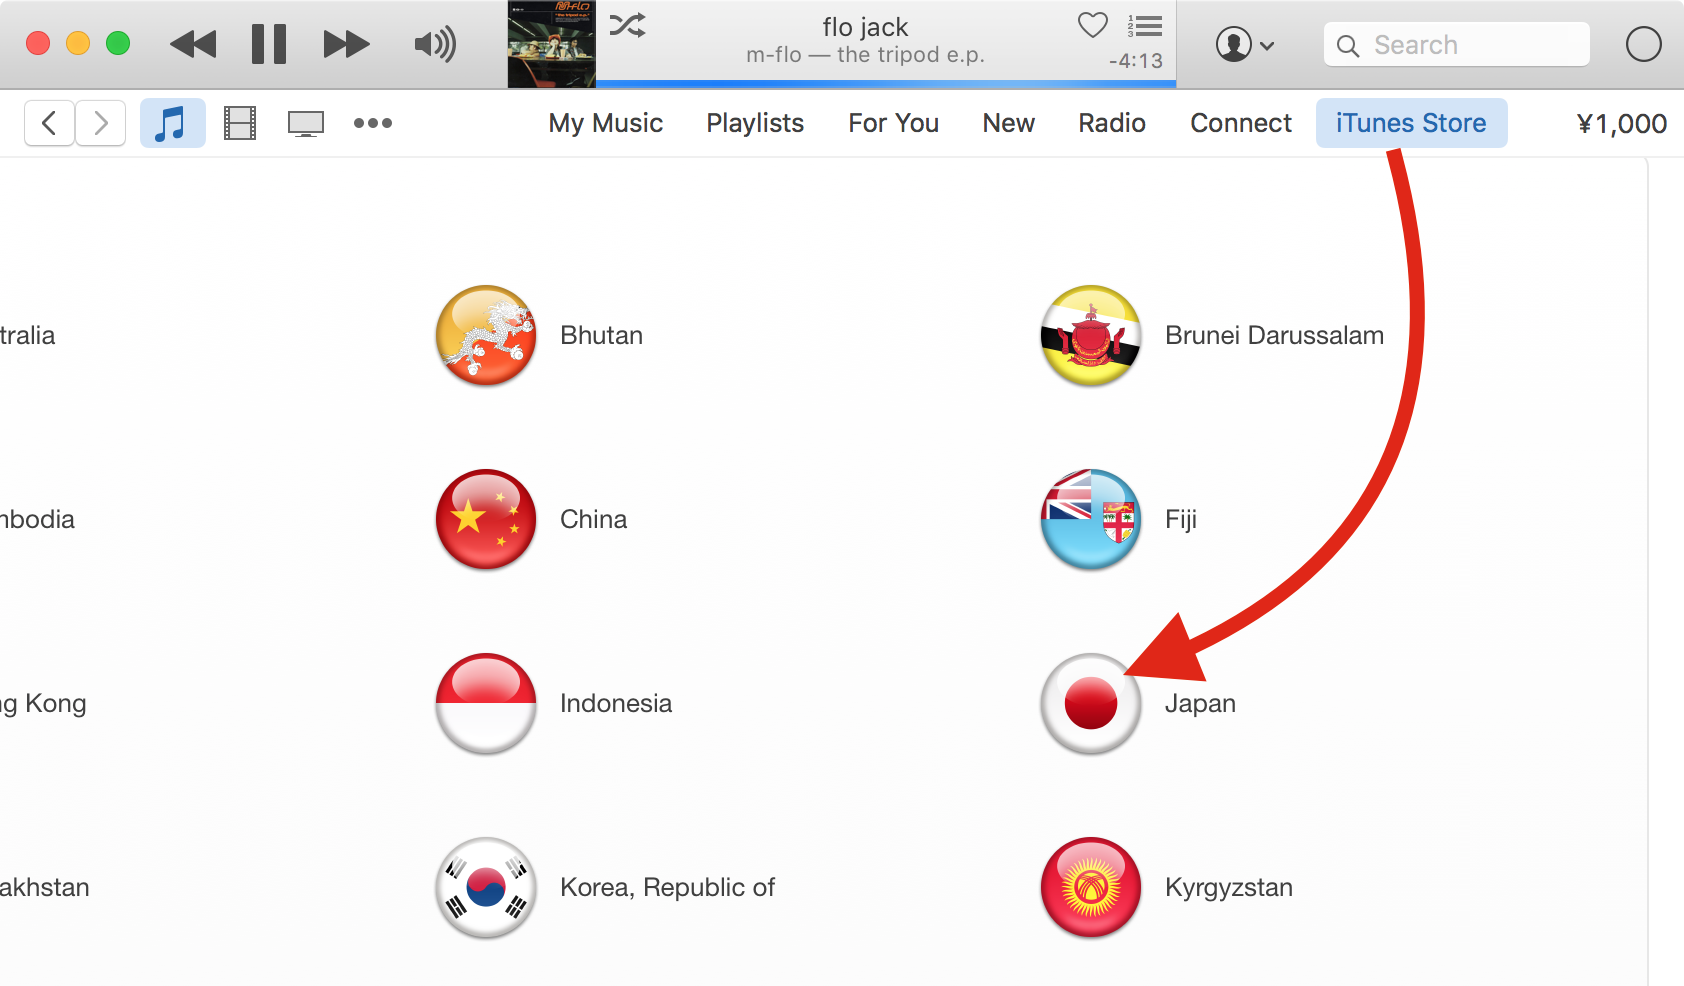 Japanese iTunes Store